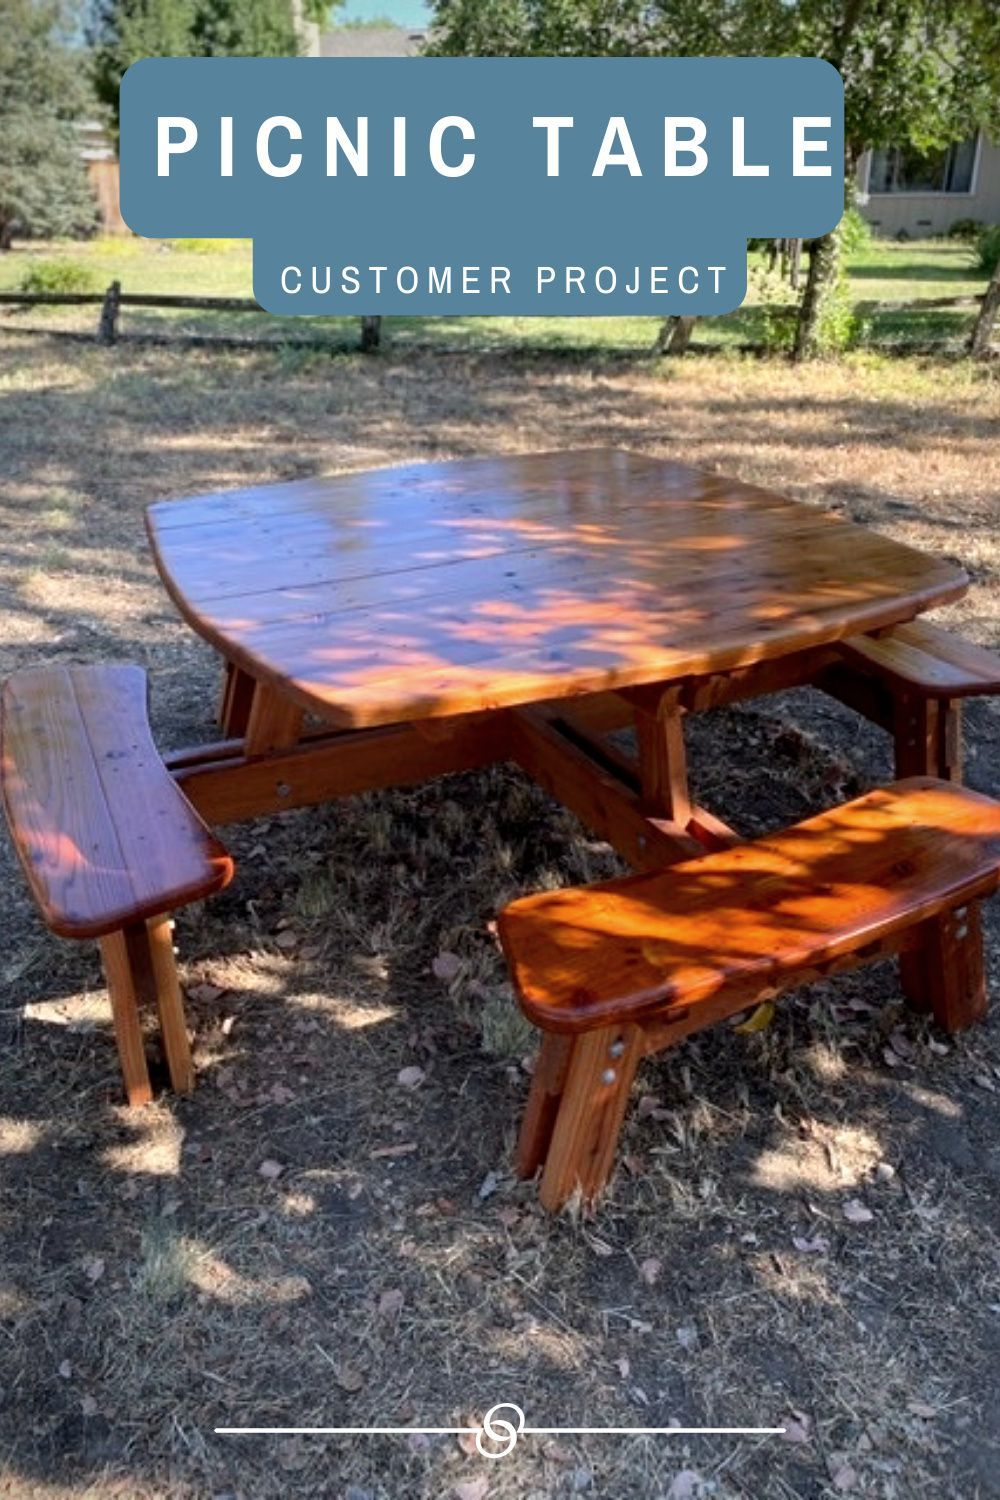 Customer Project Picnic Table In 2020 Picnic Table Plans Picnic Table Cool Woodworking Projects